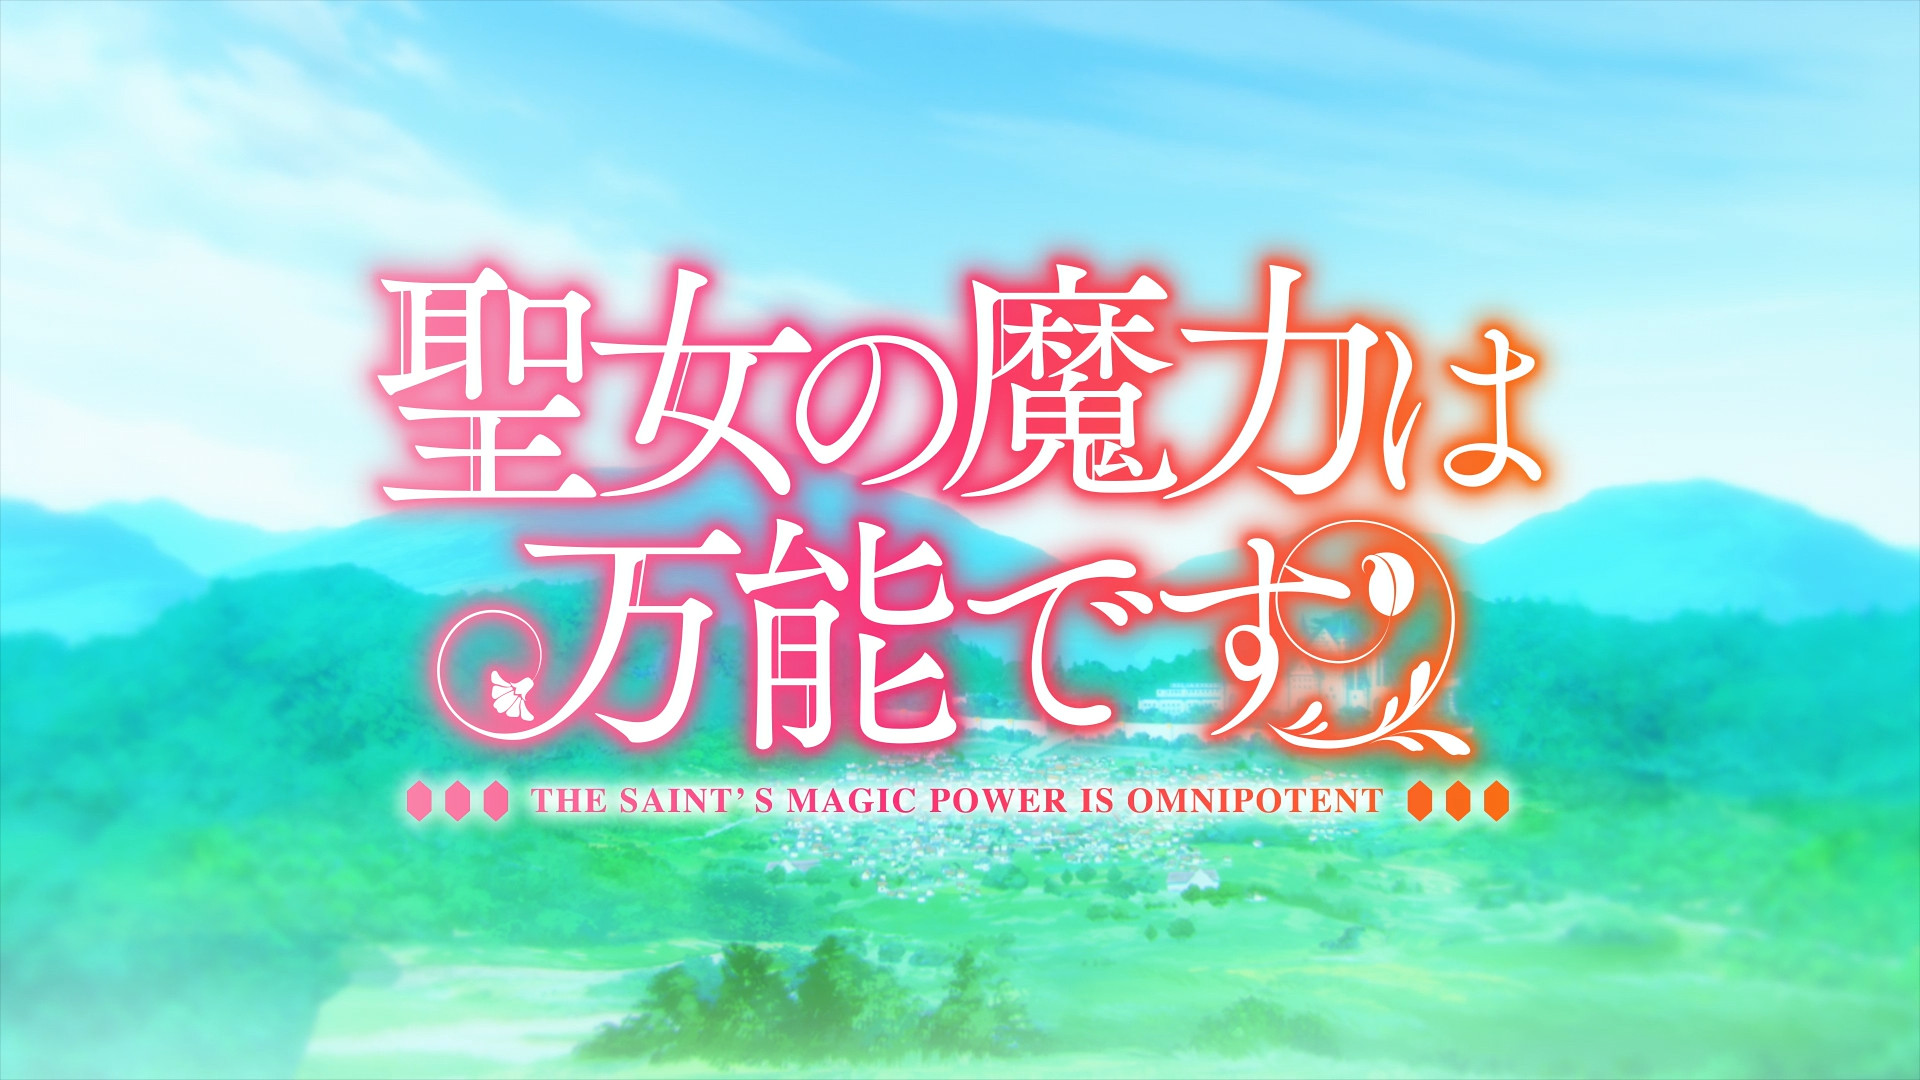 The title of the show, in fancy Japanese text, with the english name below it. The text is white and pink and orange, and the background is an out-of-focus view over a pastel-coloured forest on a sunny day. There are some hazy mountains in the distance.